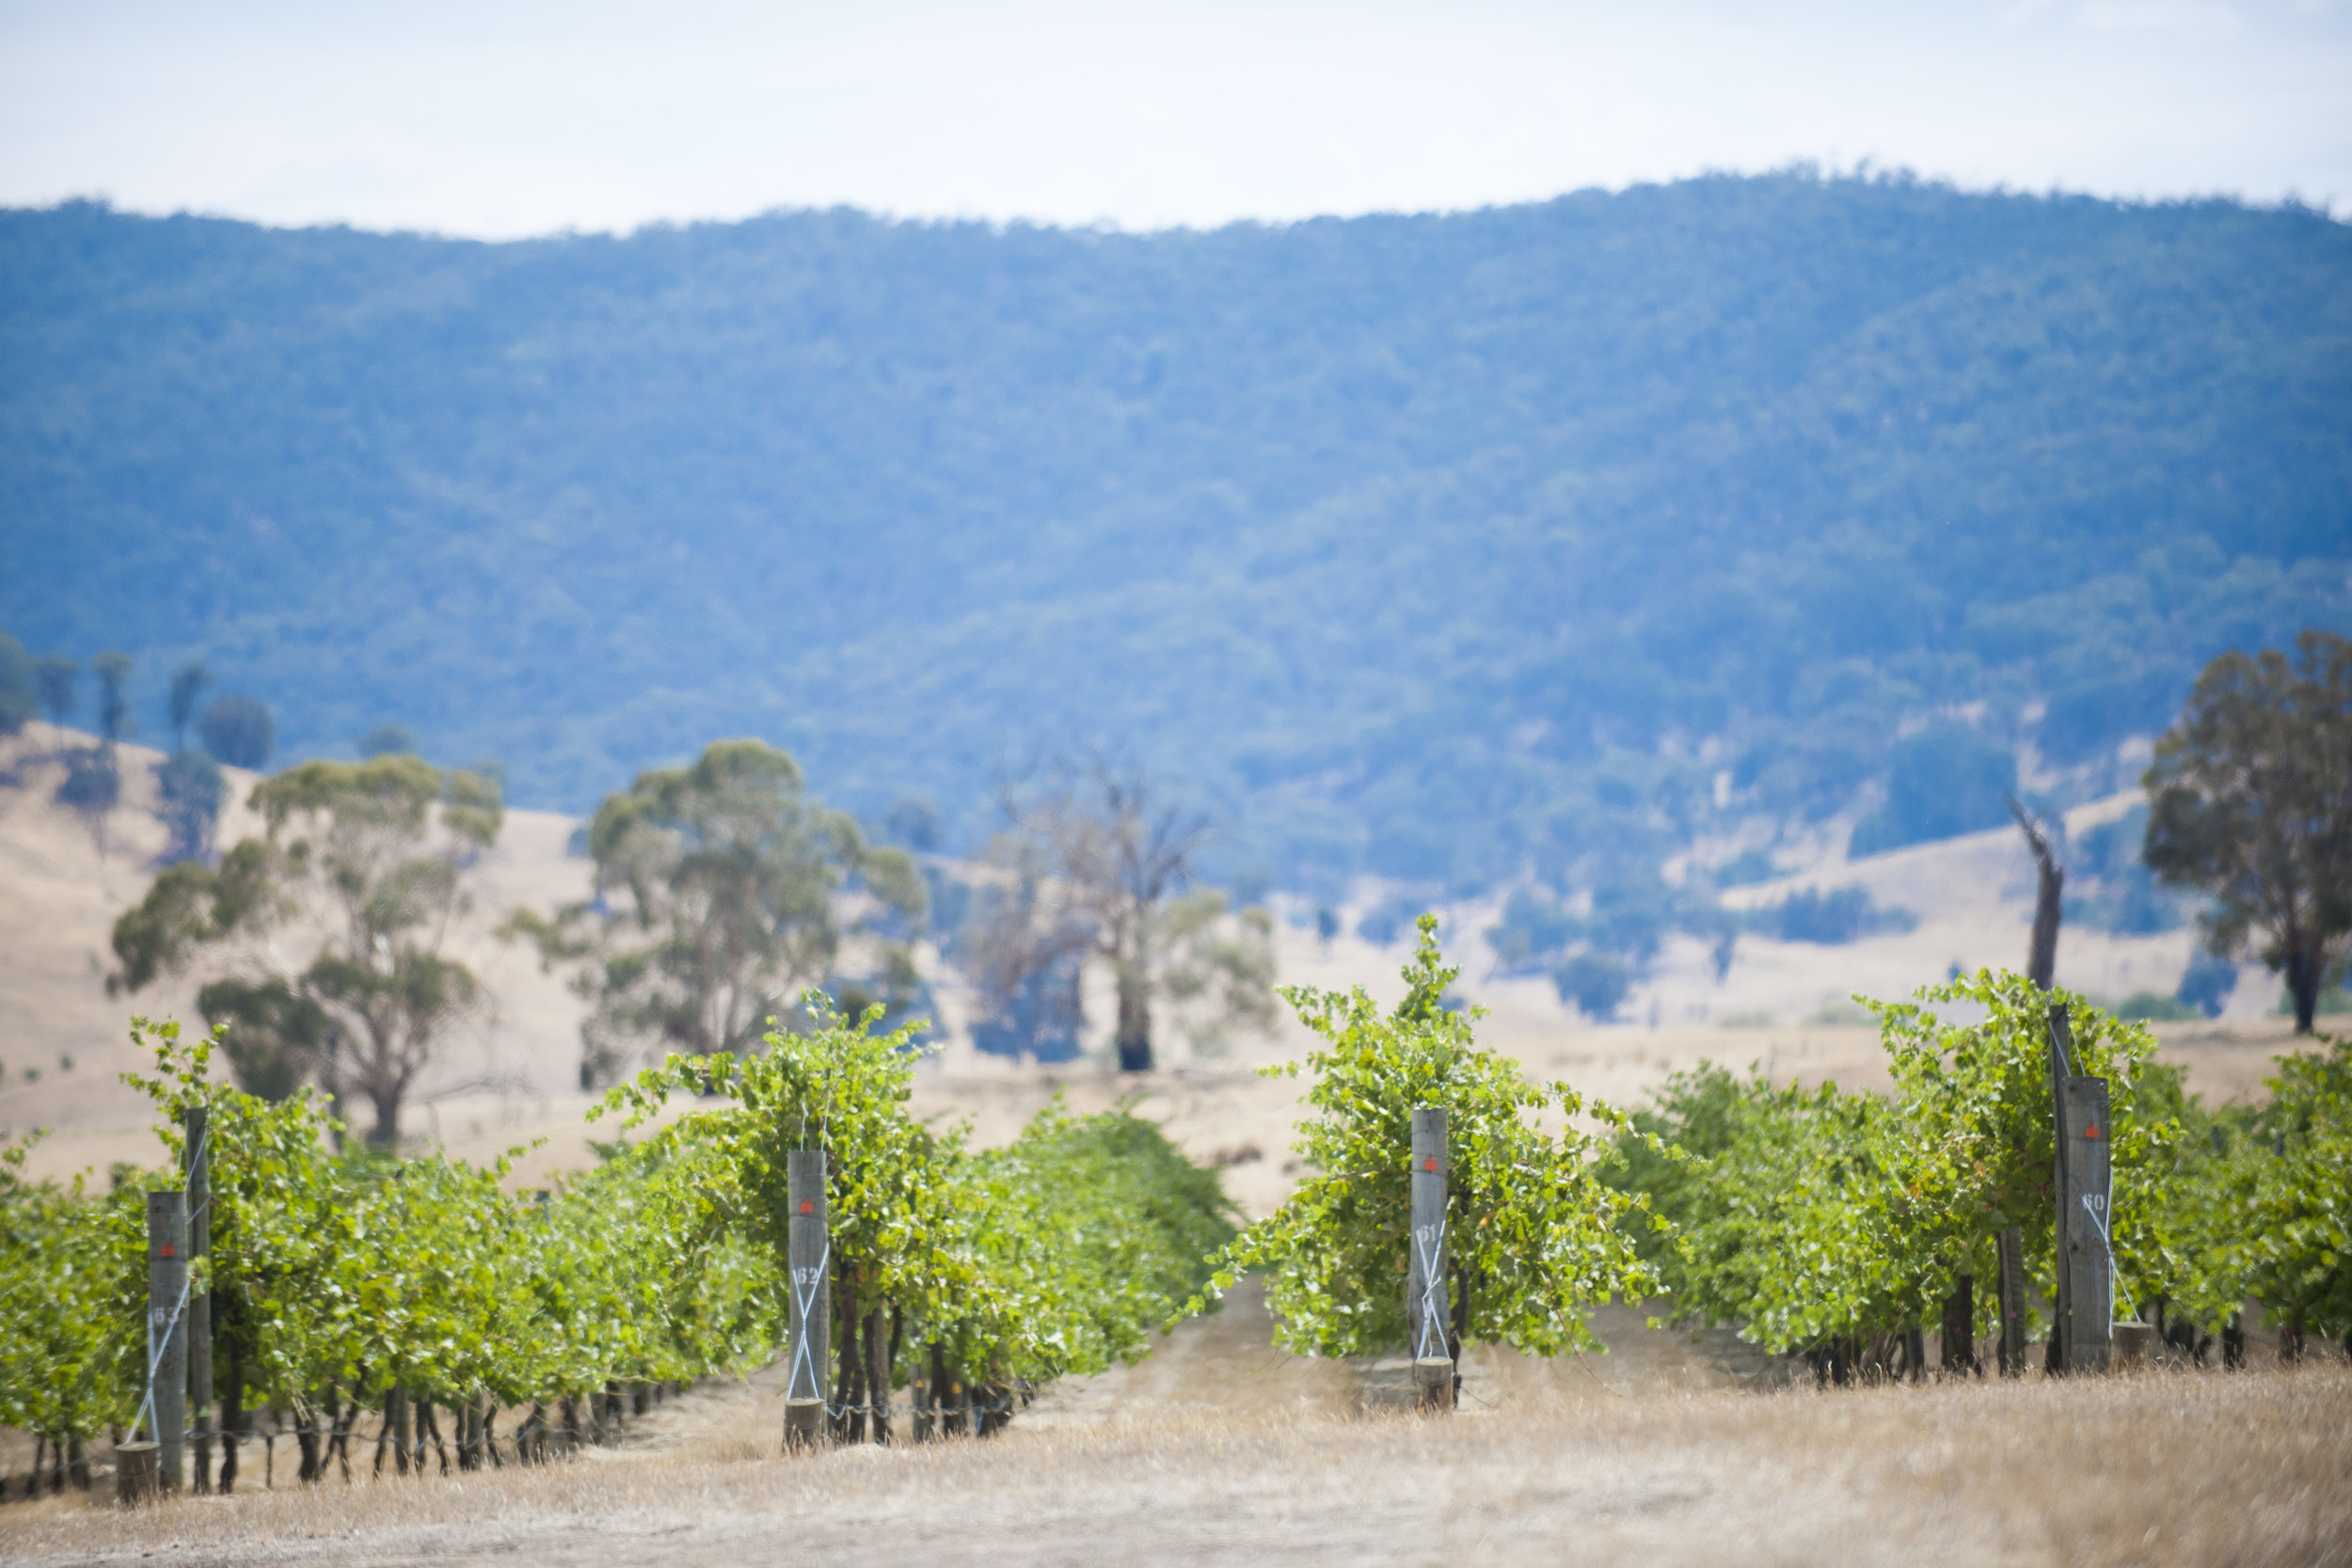 Decameron vines - in the foothills of Victoria's Pyrenees ranges